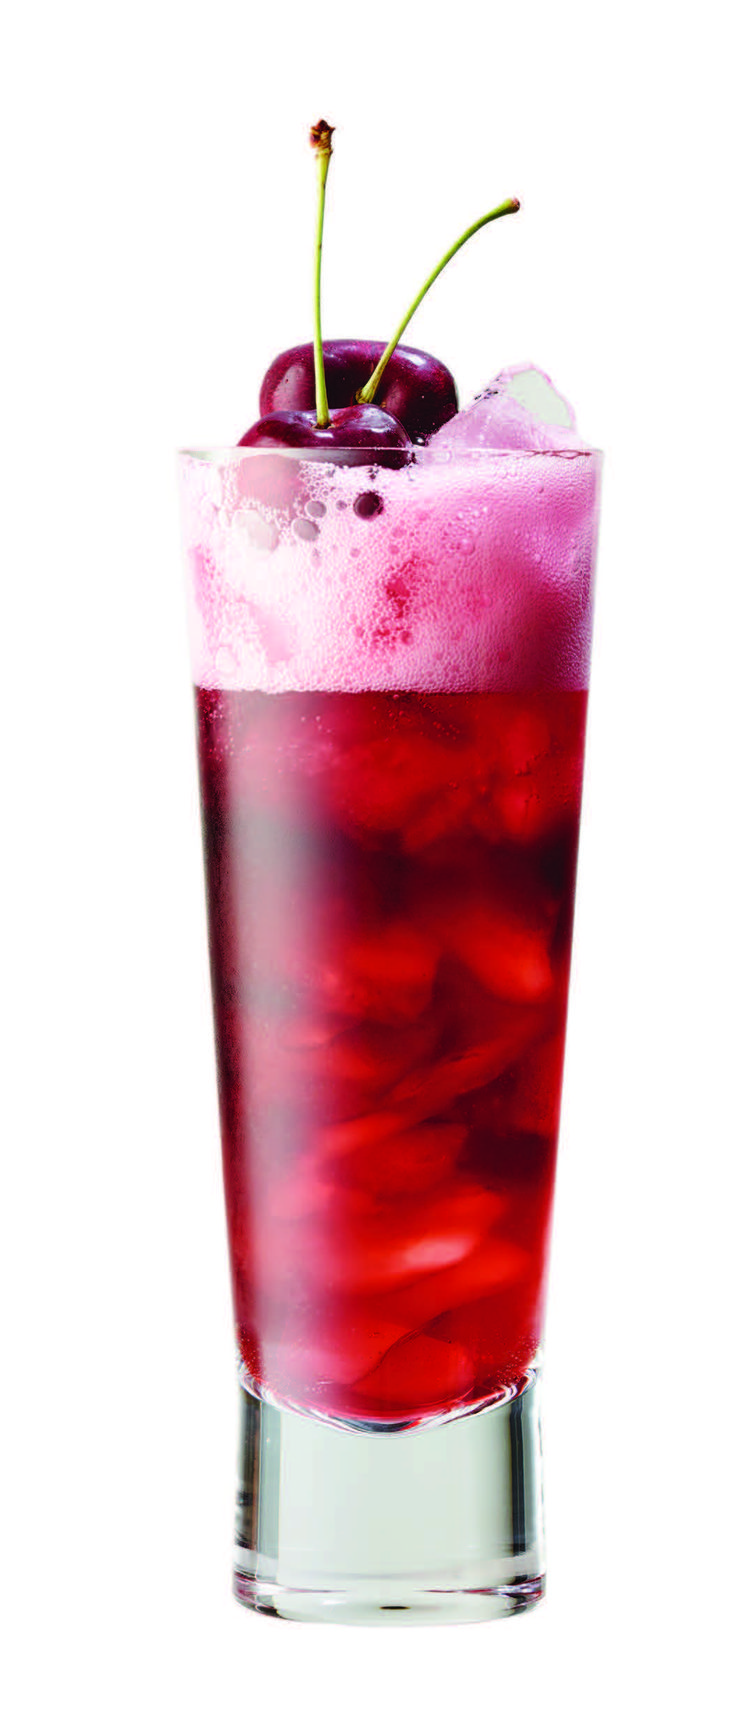 Place ice in tall glass. Add juice and Barefoot Red Moscato. Top with soda and garnish with cherry.